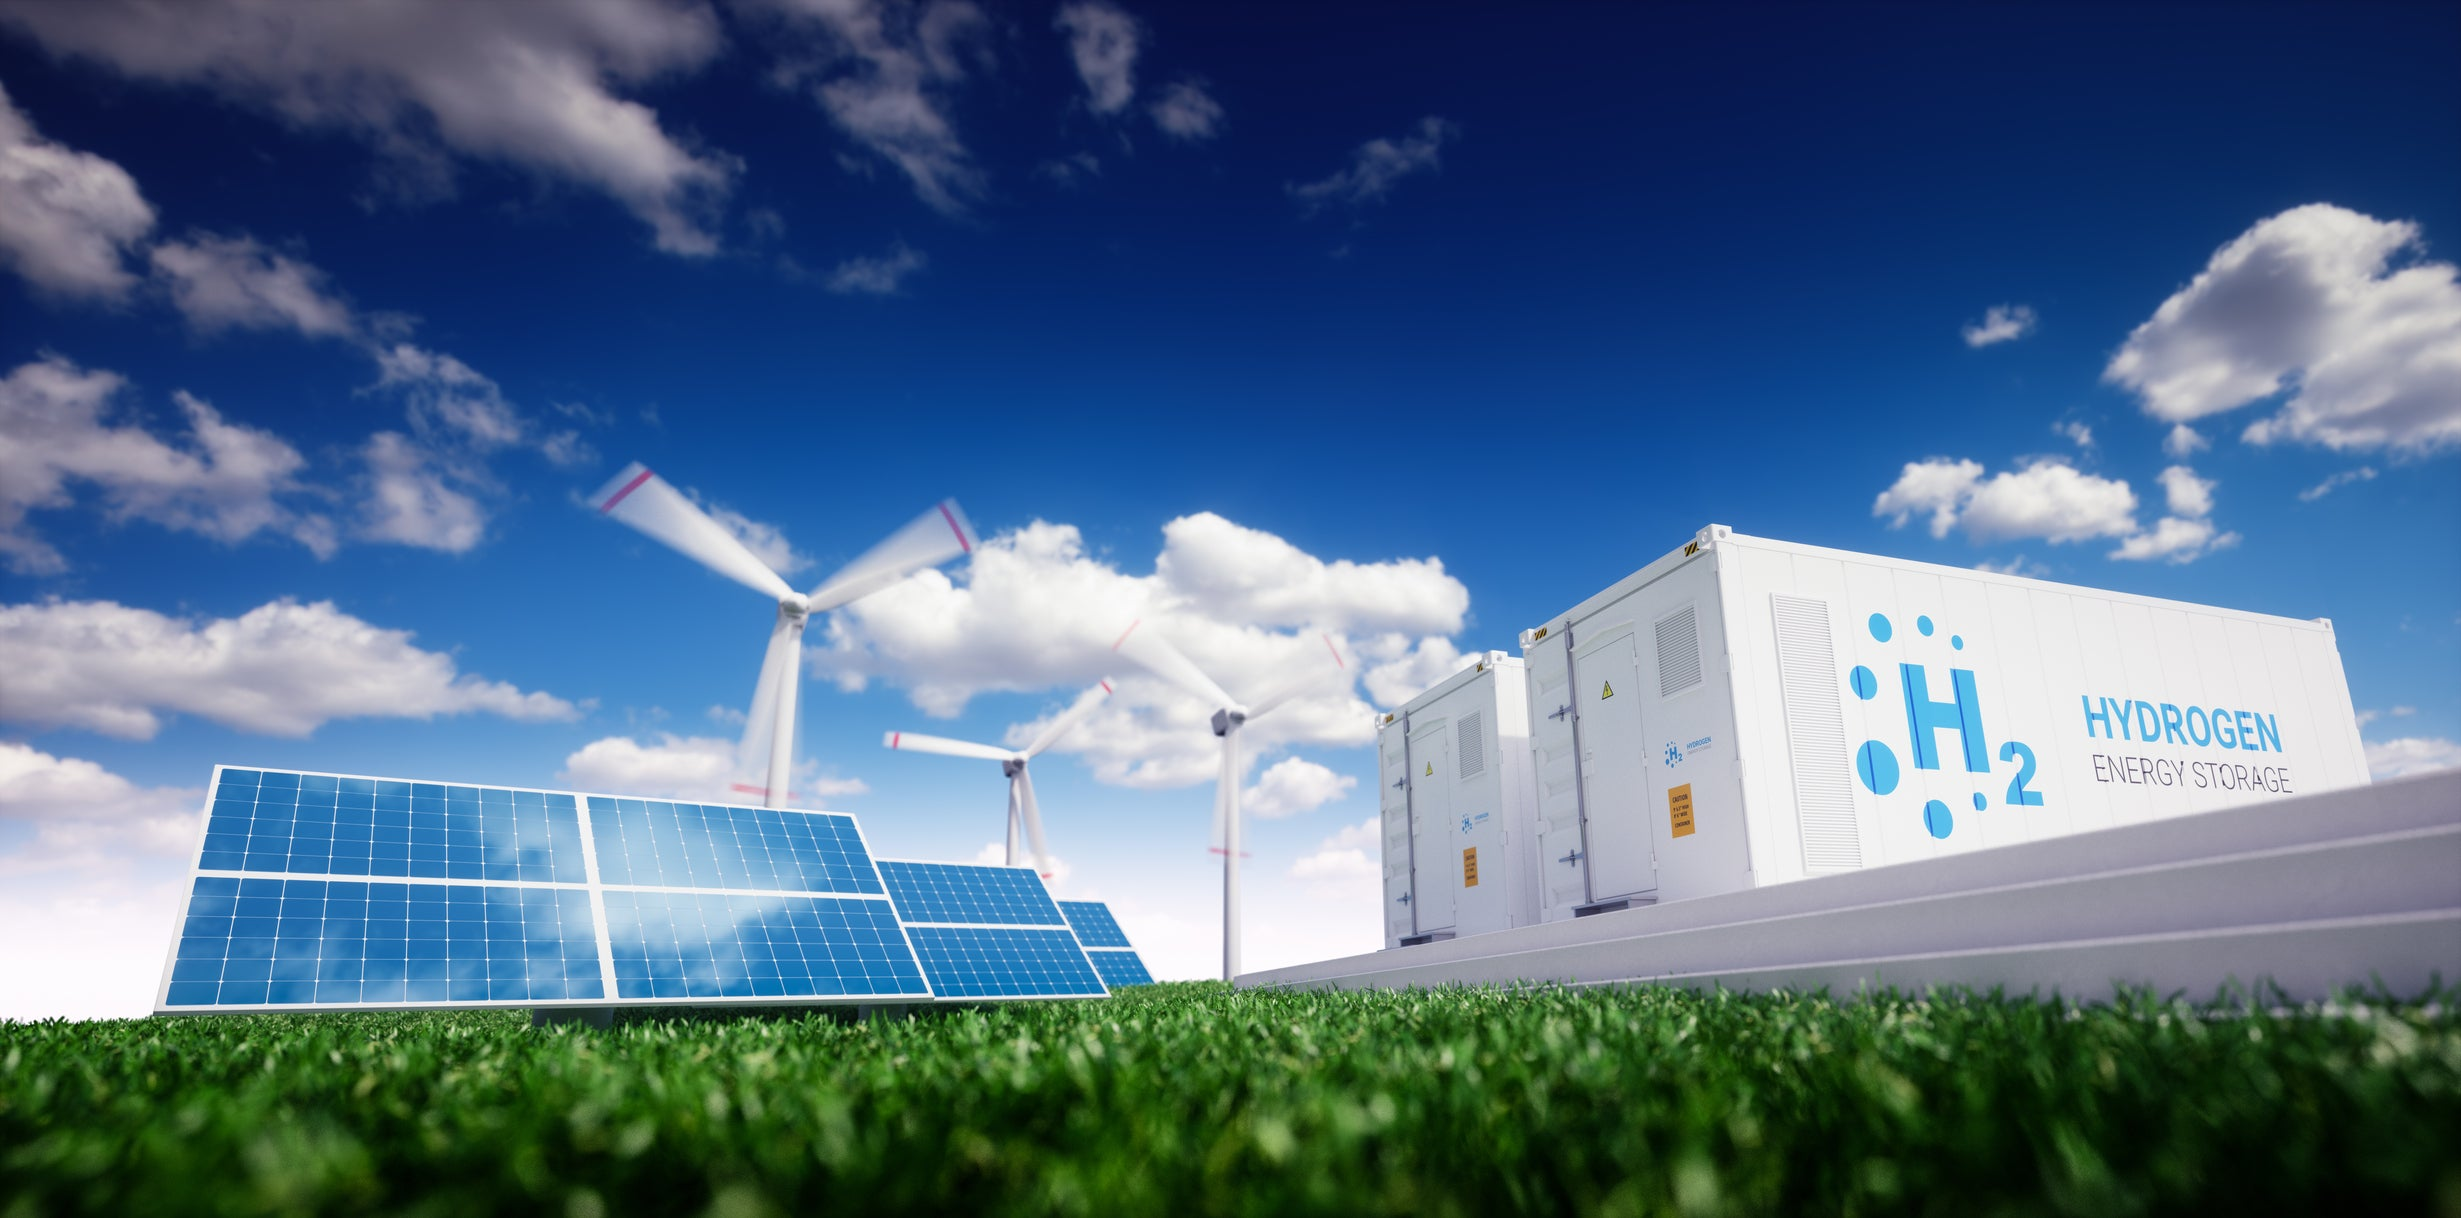 2 Stocks That Could Benefit From Hydrogen Power | The Motley Fool